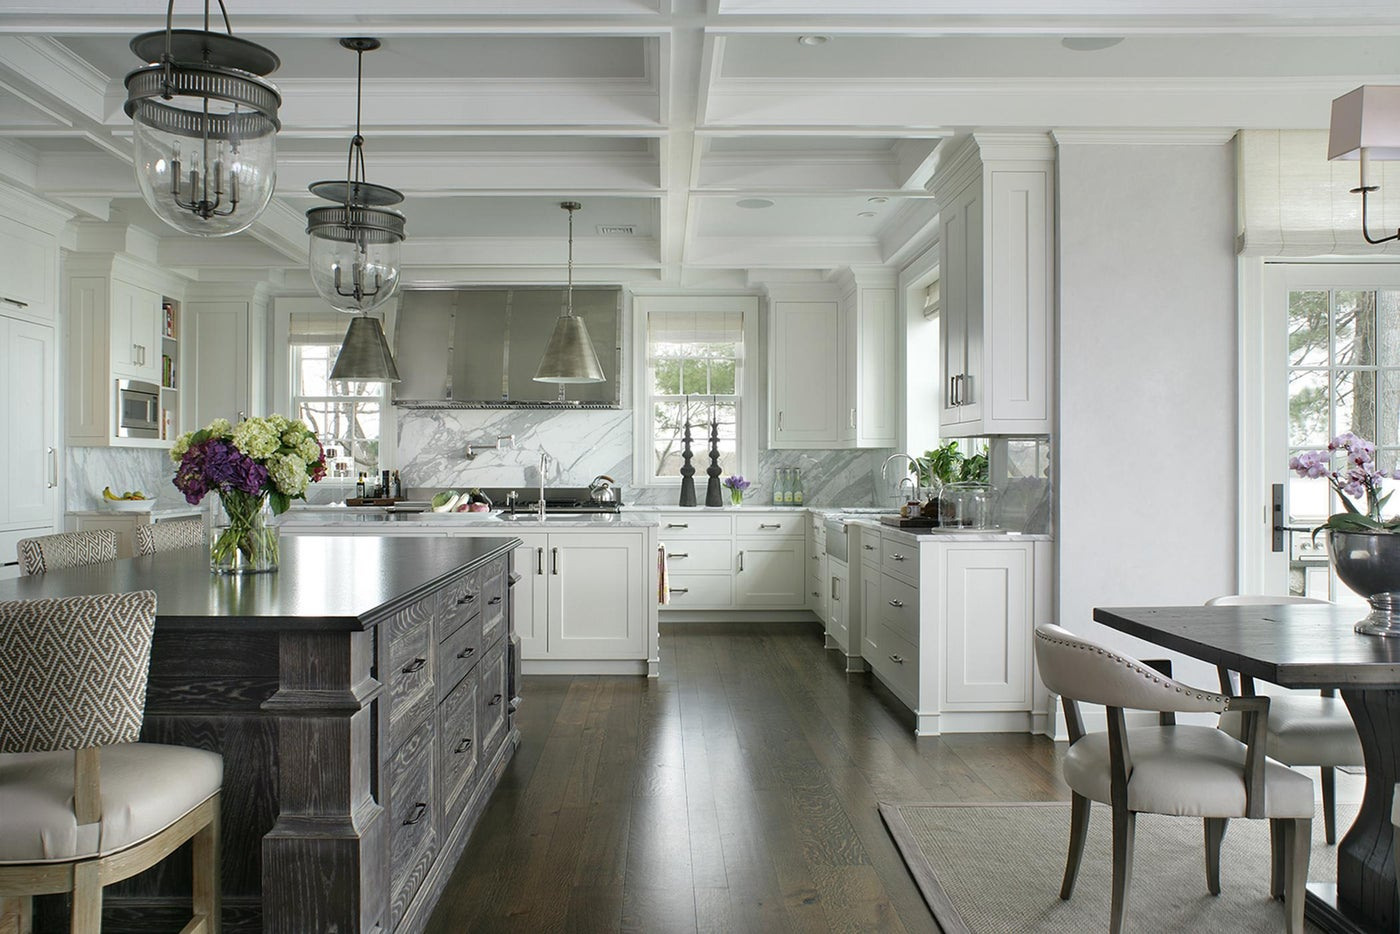 Gourmet Kitchen with double islands and custom hood